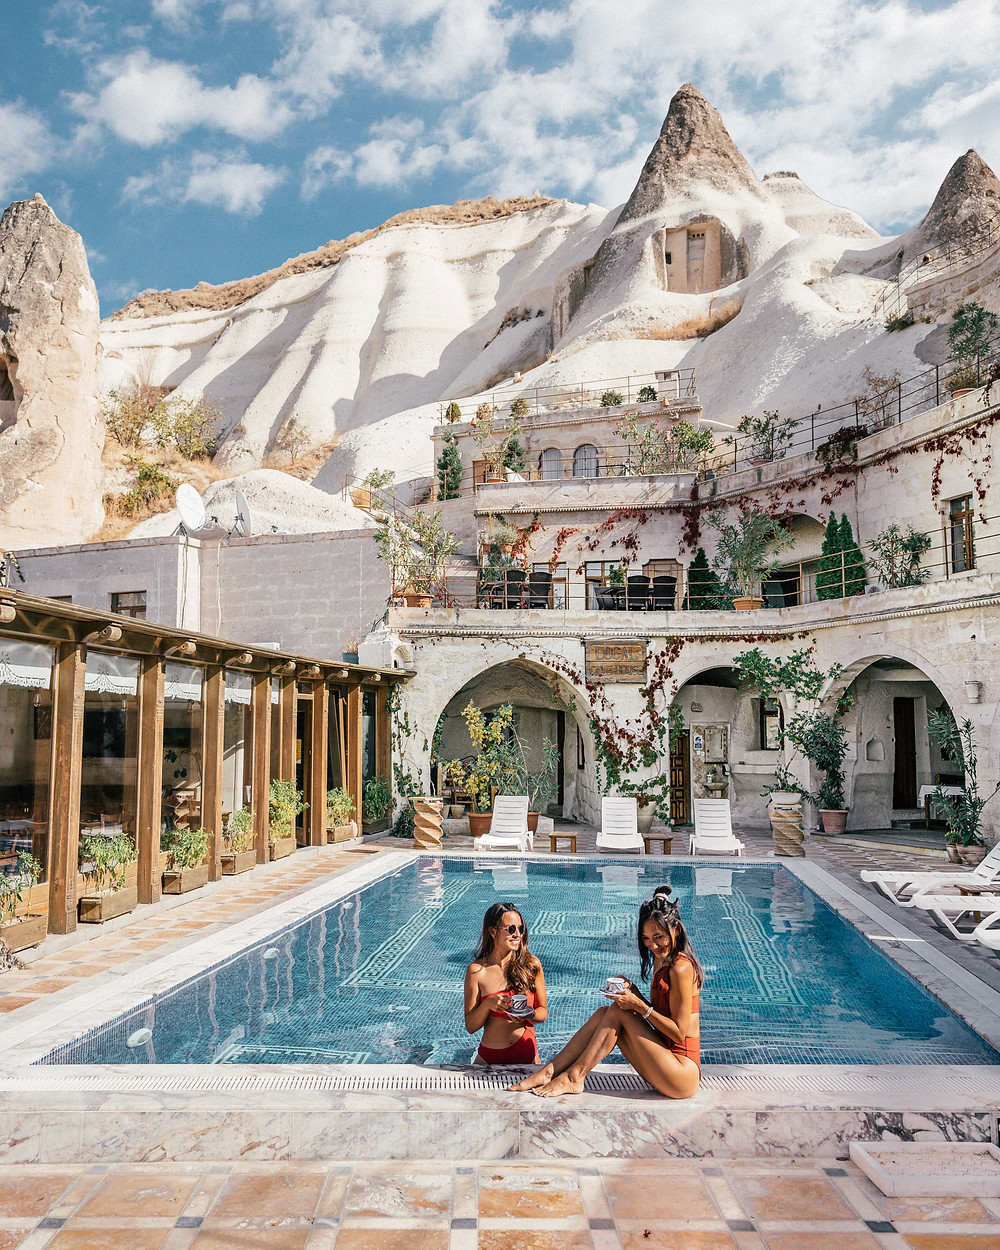 Local Cave House, Goreme, Cappadocia, Turkey